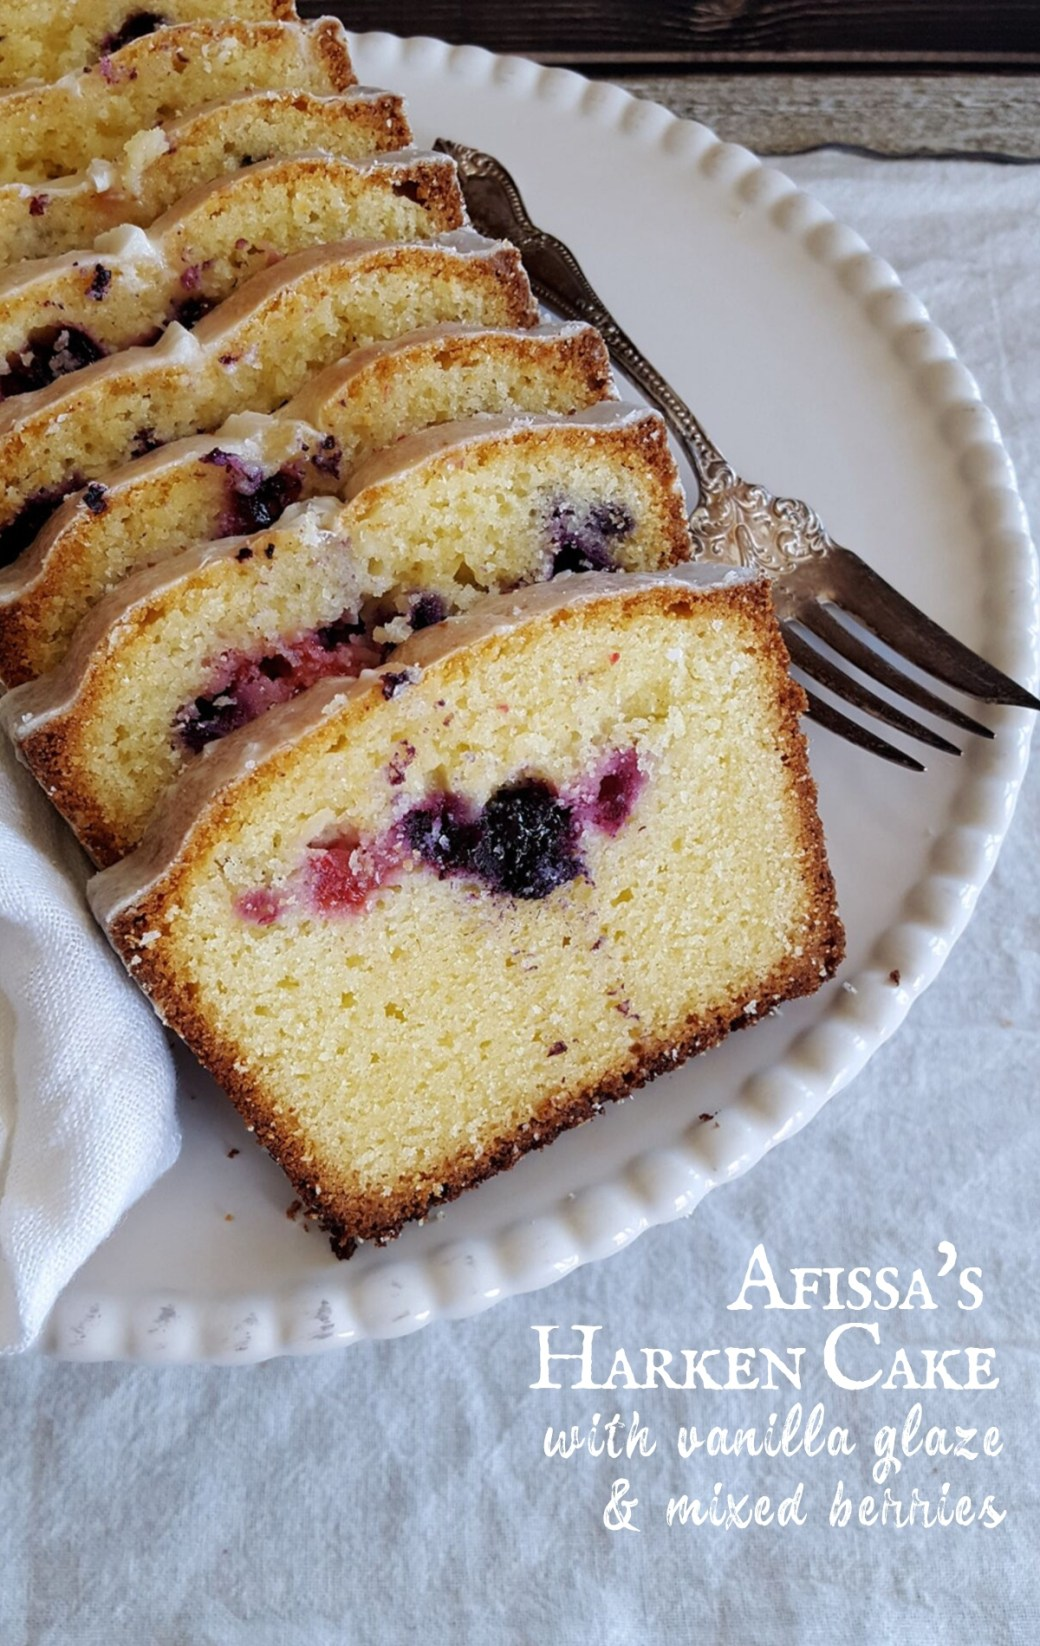 Afissa's Harken Cake with Vanilla Glaze & Mixed Berries